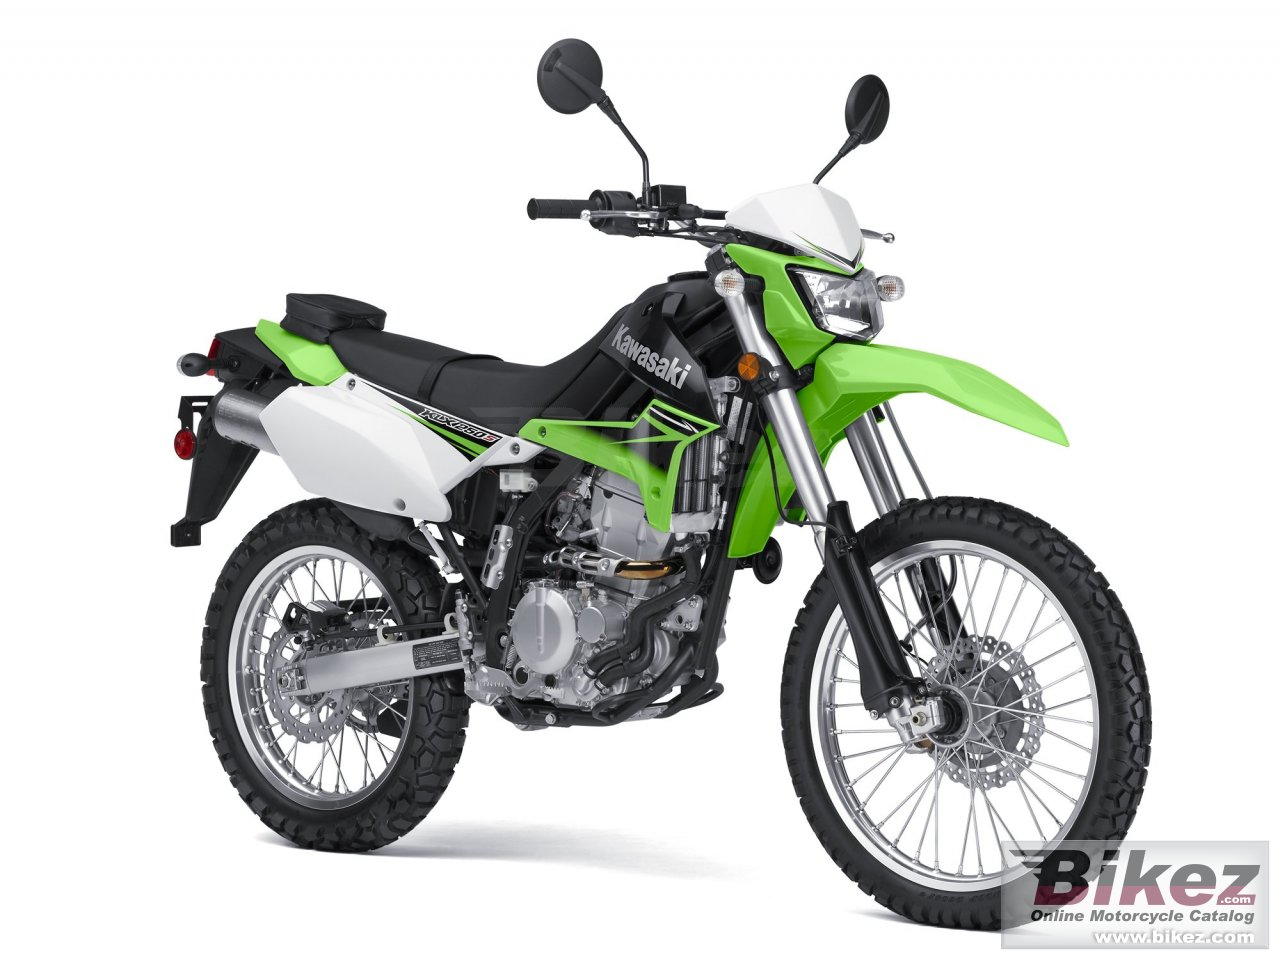 Big Kawasaki klx 250s picture and wallpaper from Bikez.com